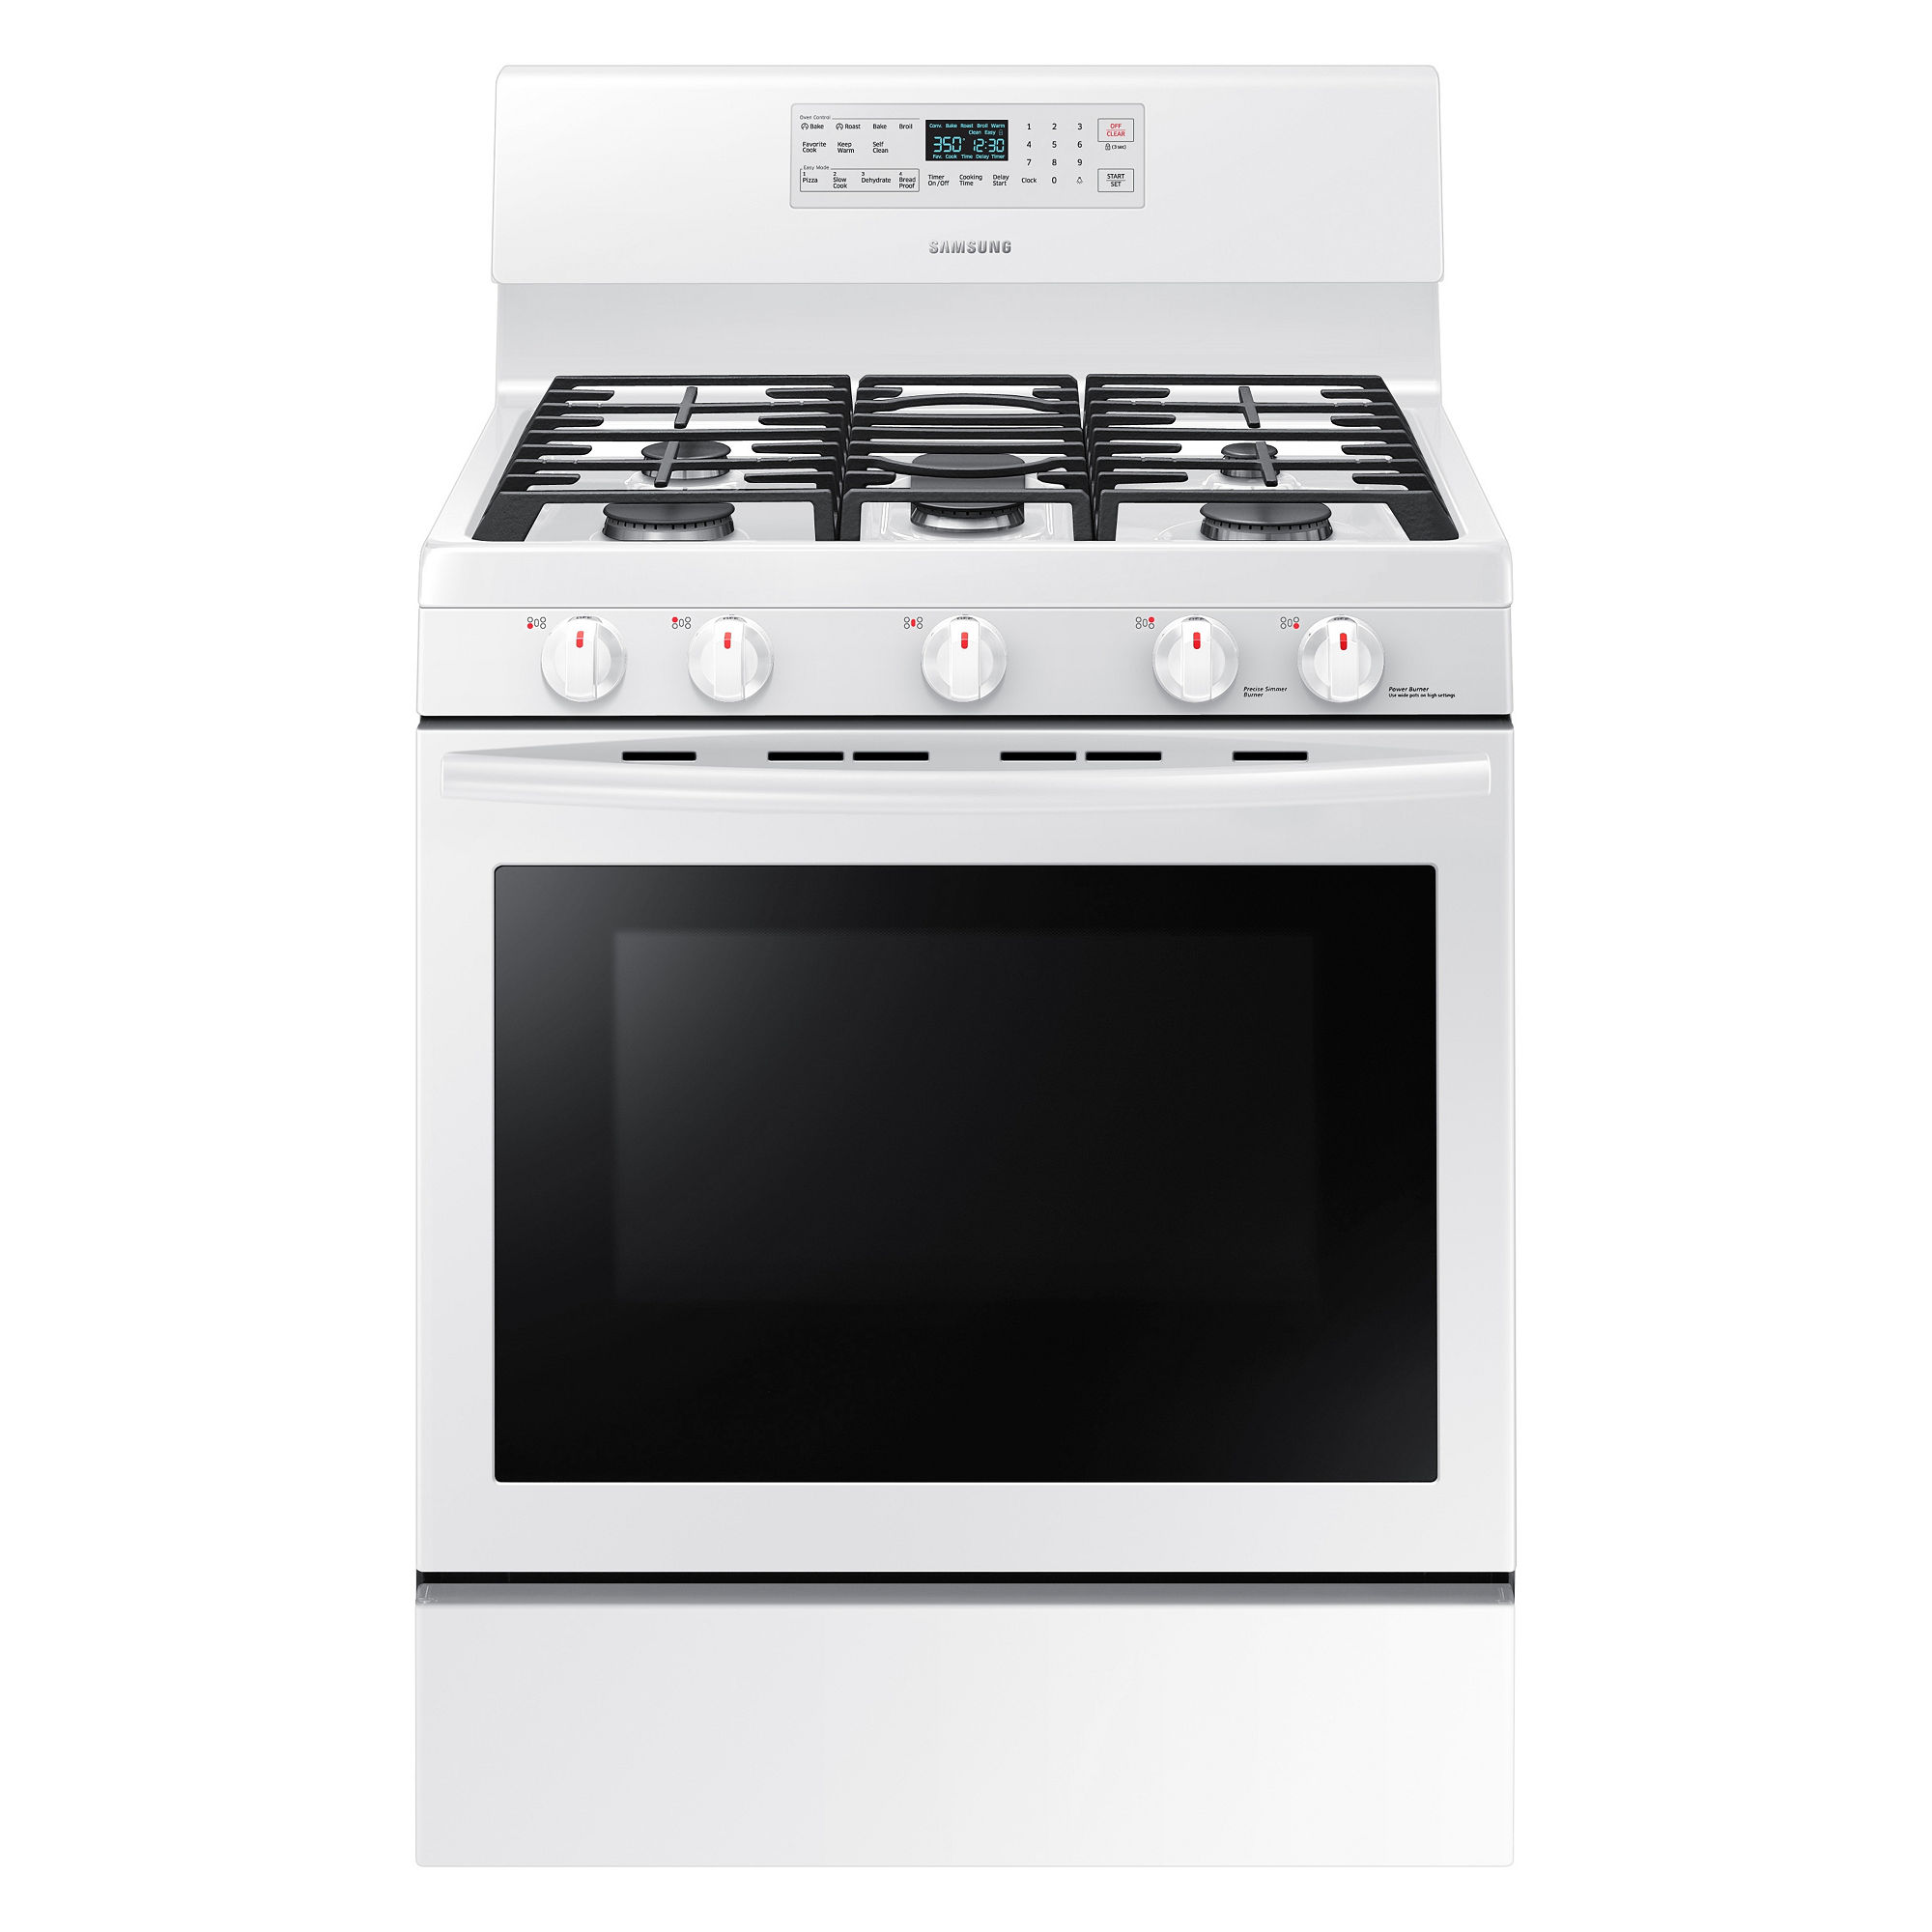 Samsung 5.8 cu. ft. Gas Range with Convection - NX58M5600SW/AA